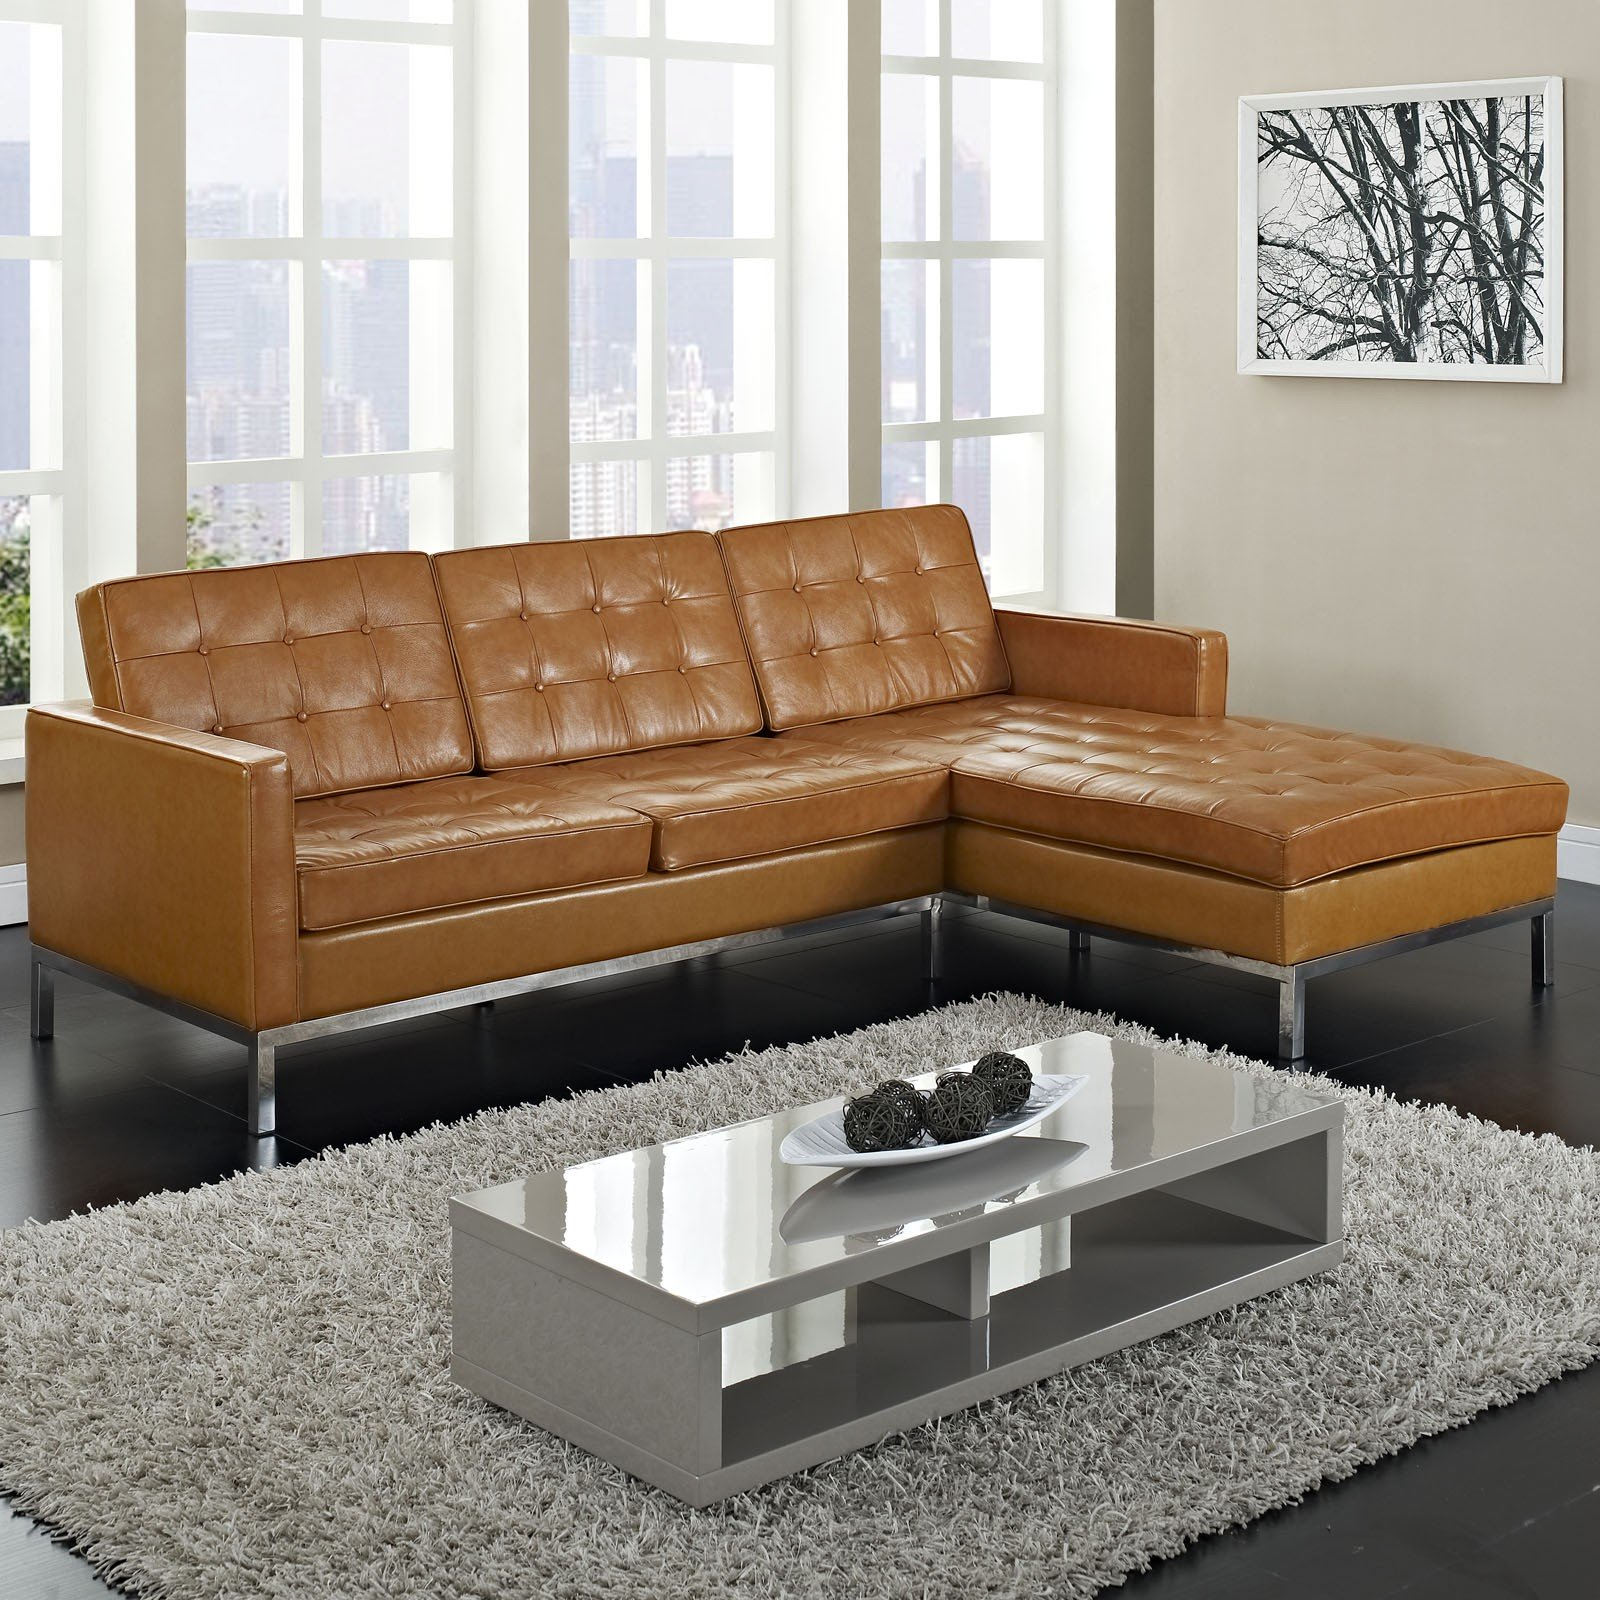 Simple review about living room furniture small sectional sofa with chaise - Small couch with chaise ...